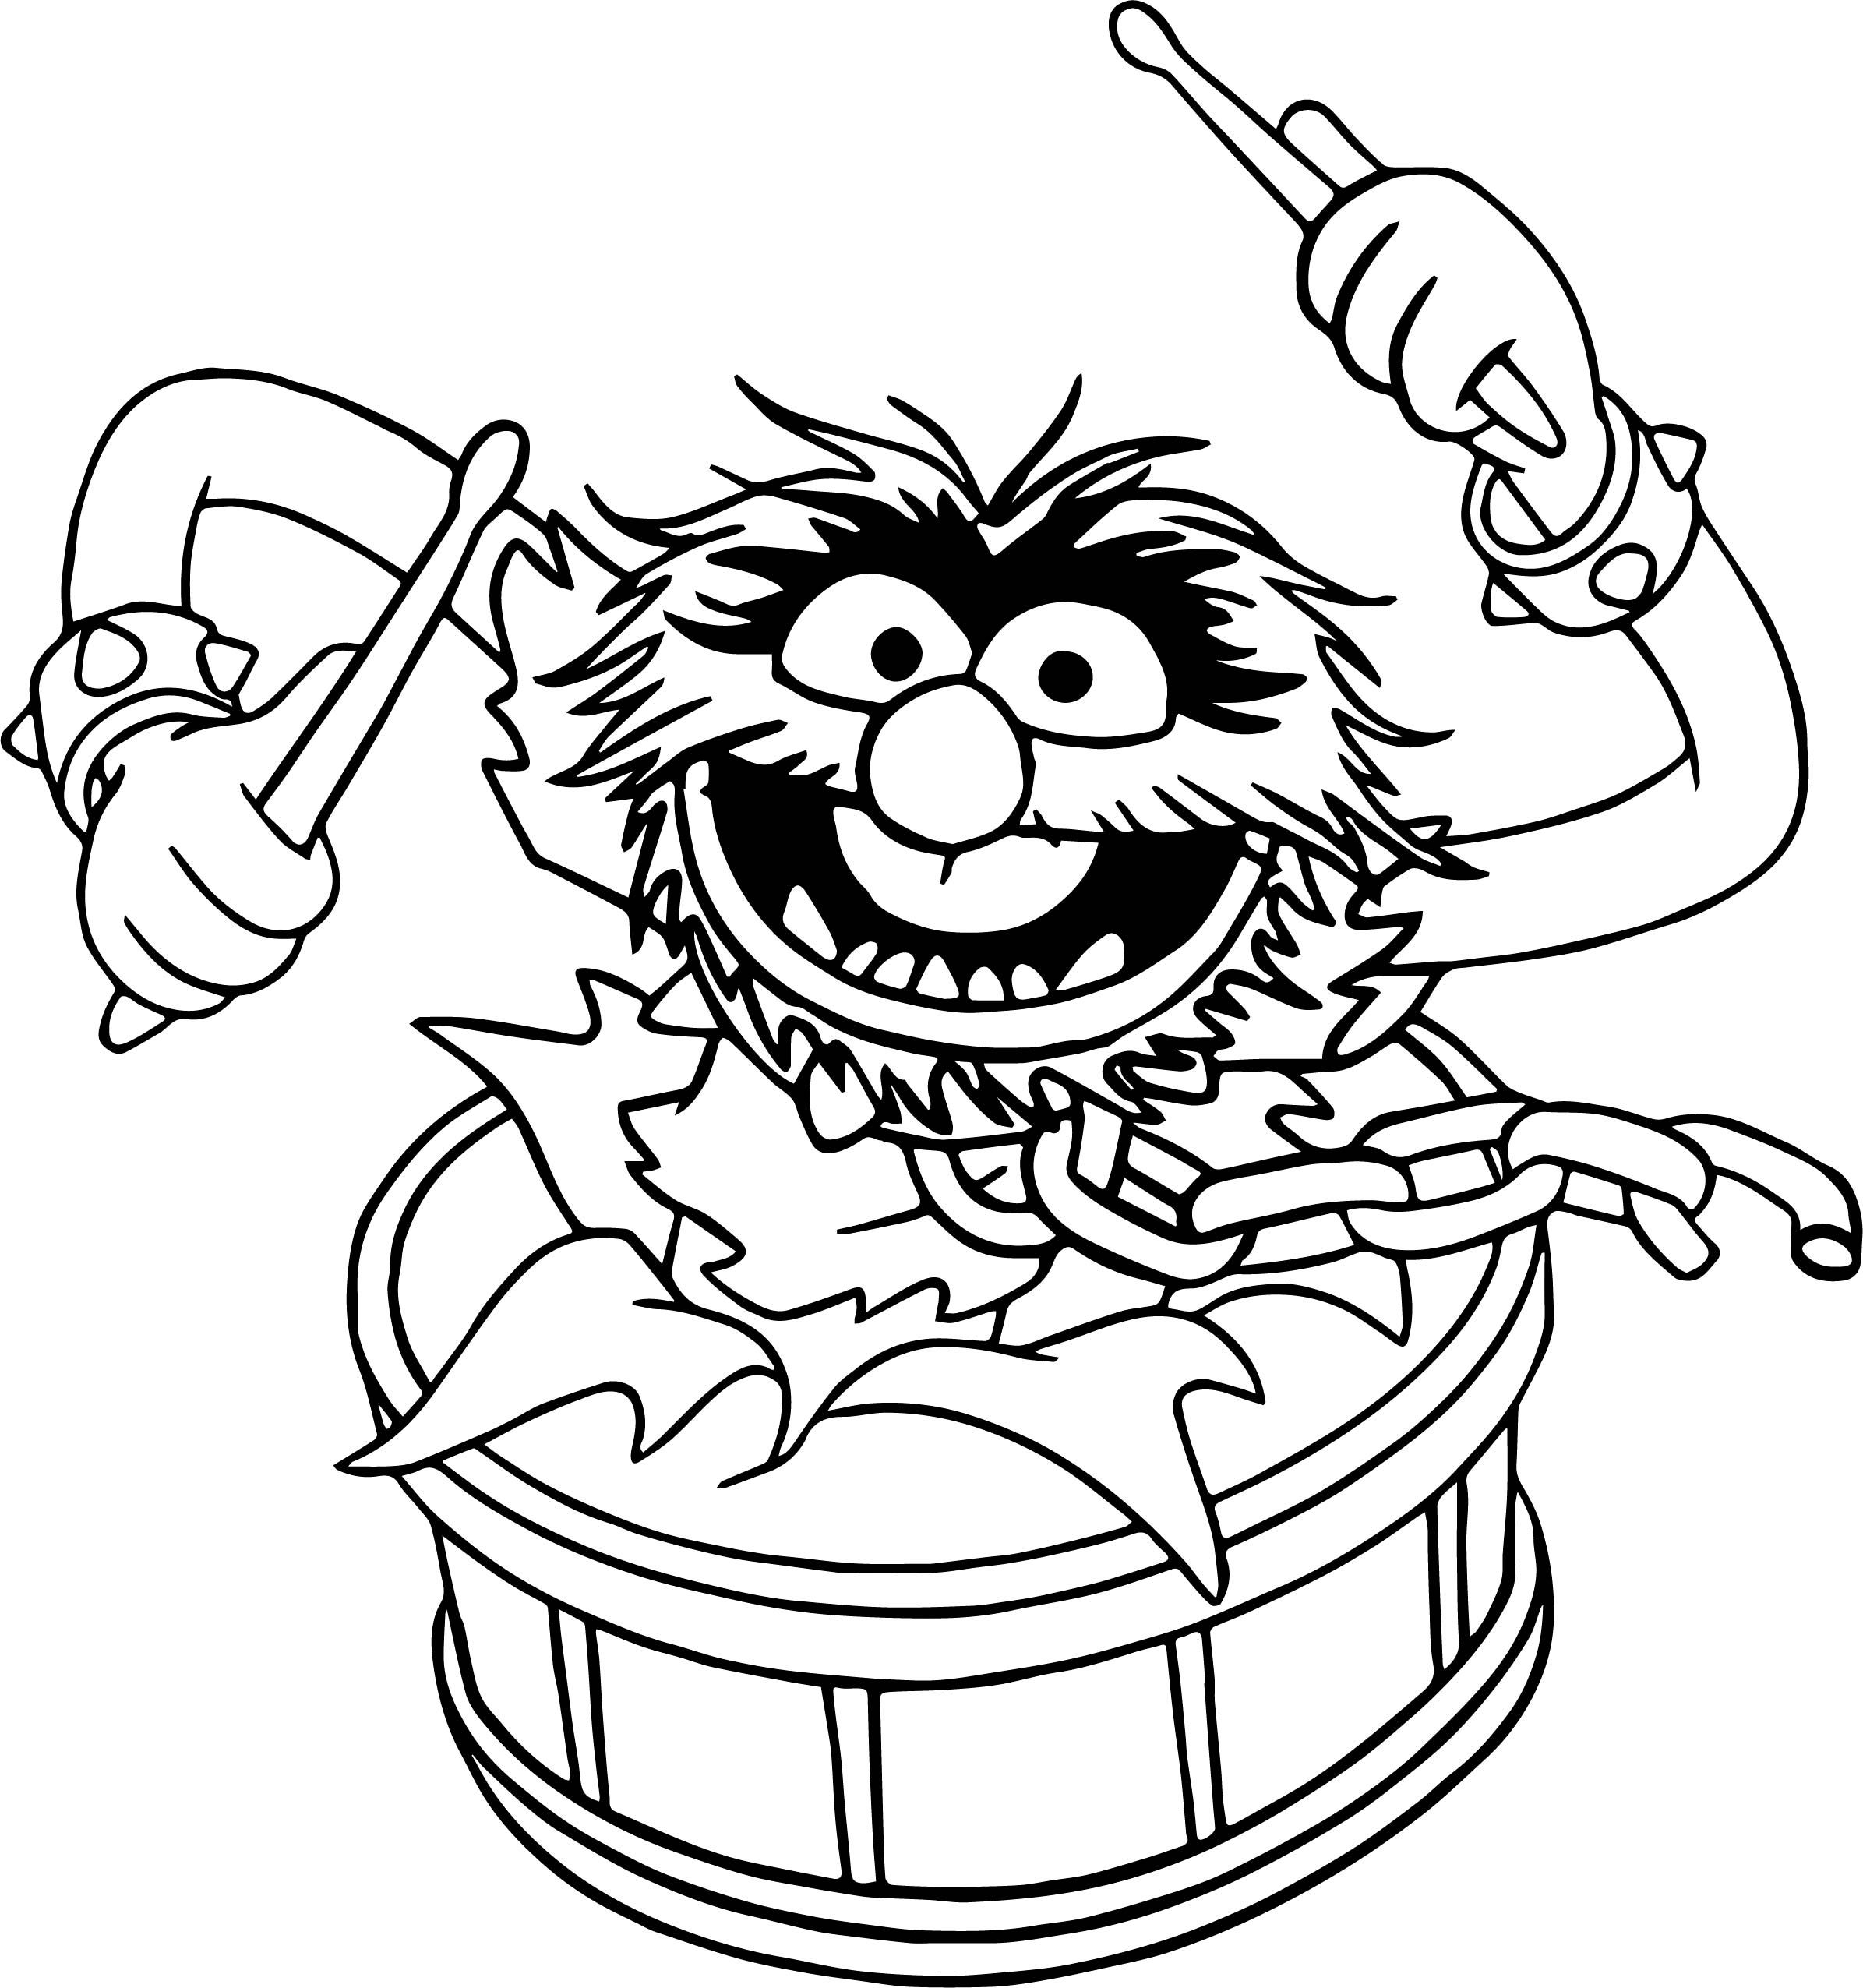 2391x2551 One Direction Cartoon Drawing Coloring Pages Printable